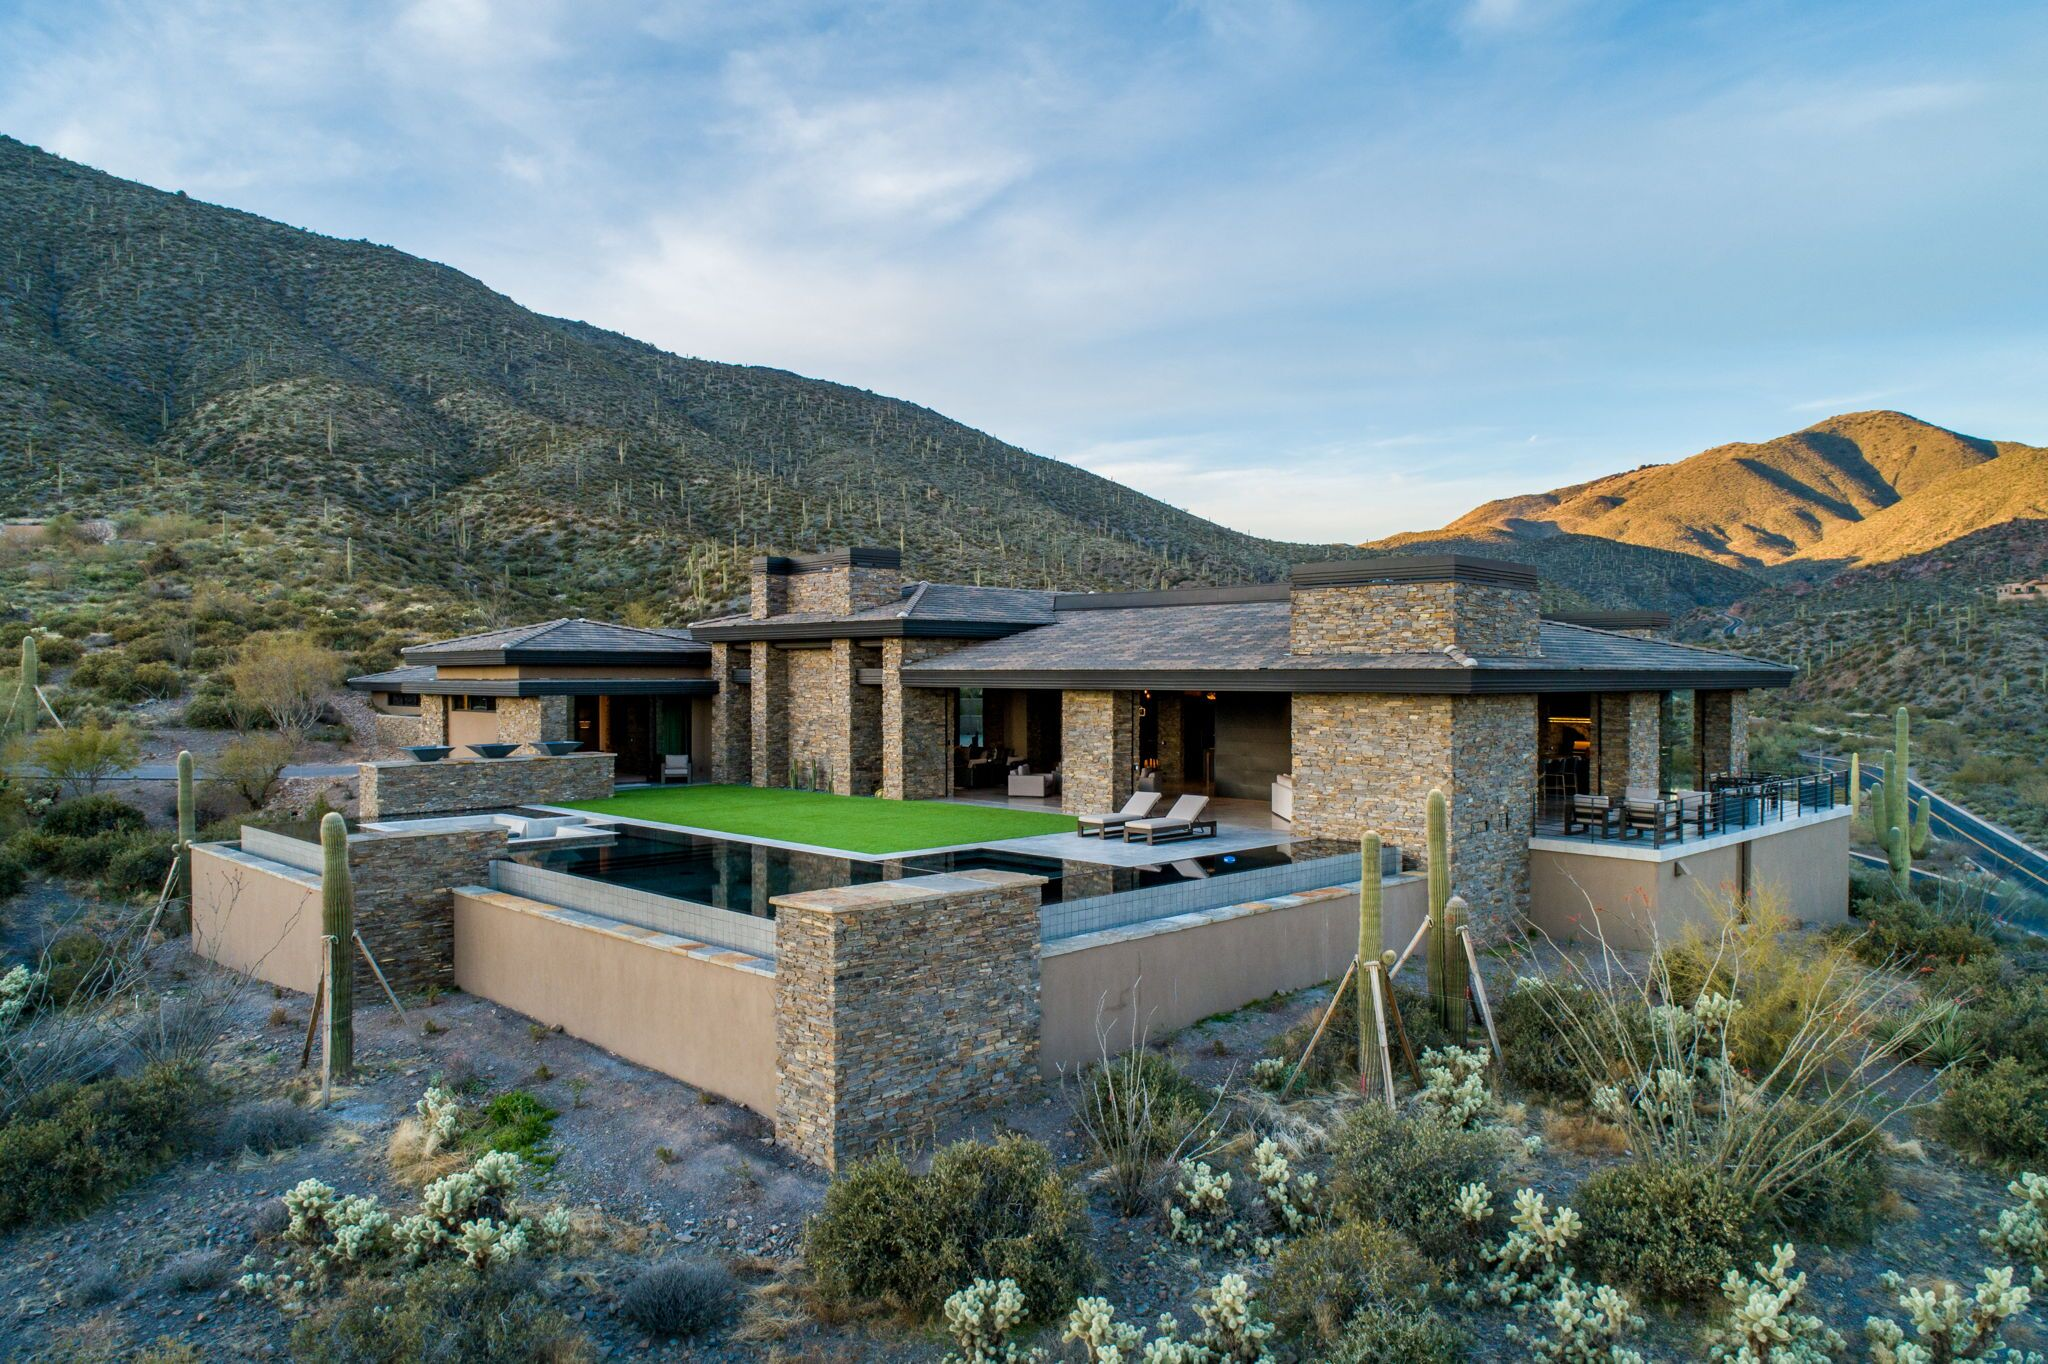 9300+E+Grapevine+Pass+Scottsdale-60-WebQuality-Rear+Elevations.jpg